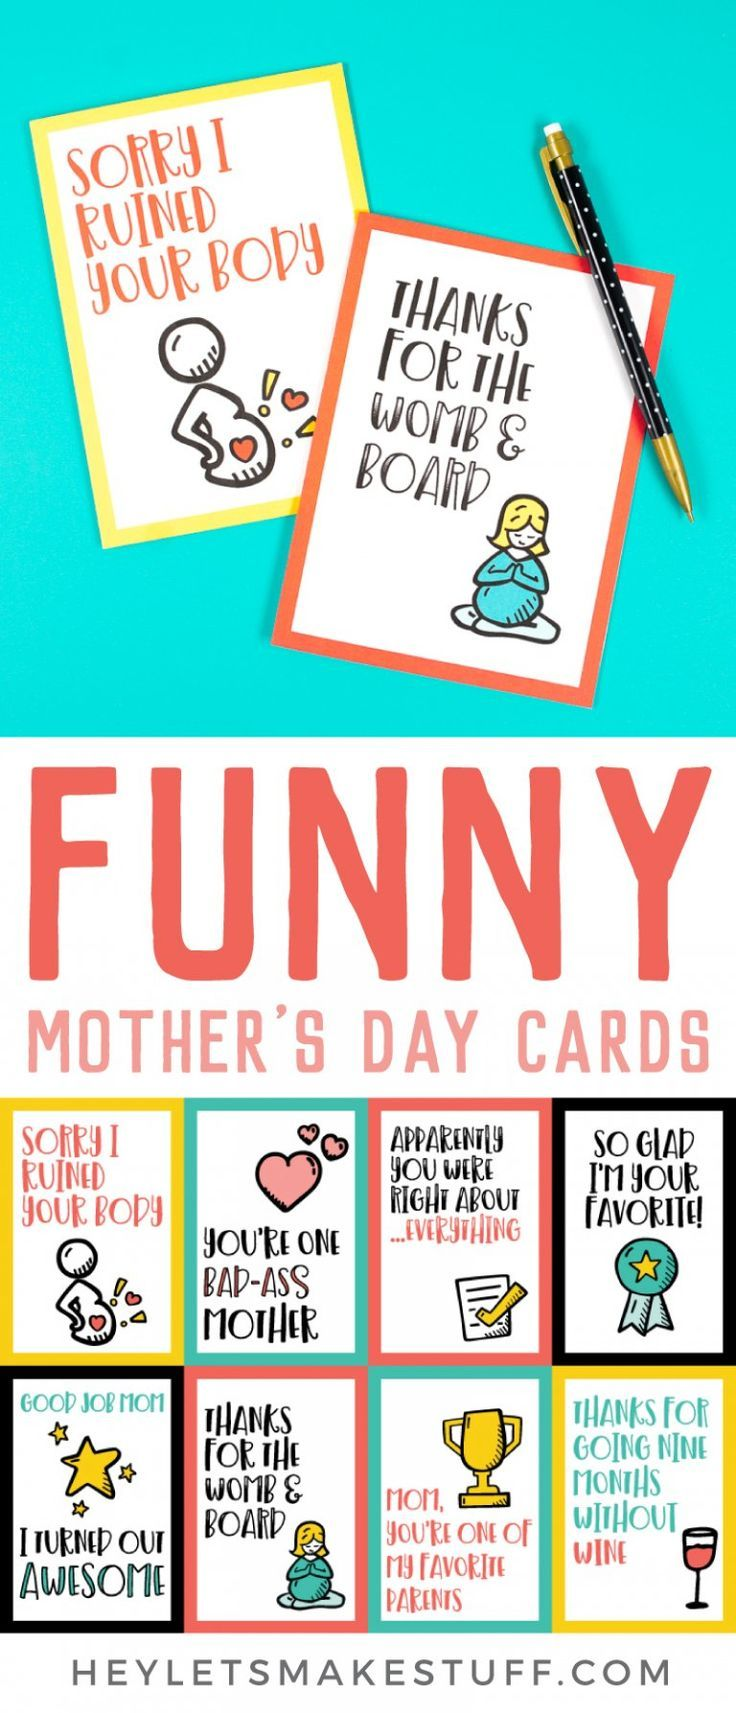 image about Printable Funny Mothers Day Cards named Printable Humorous Moms Working day Playing cards Vacations - Moms Working day